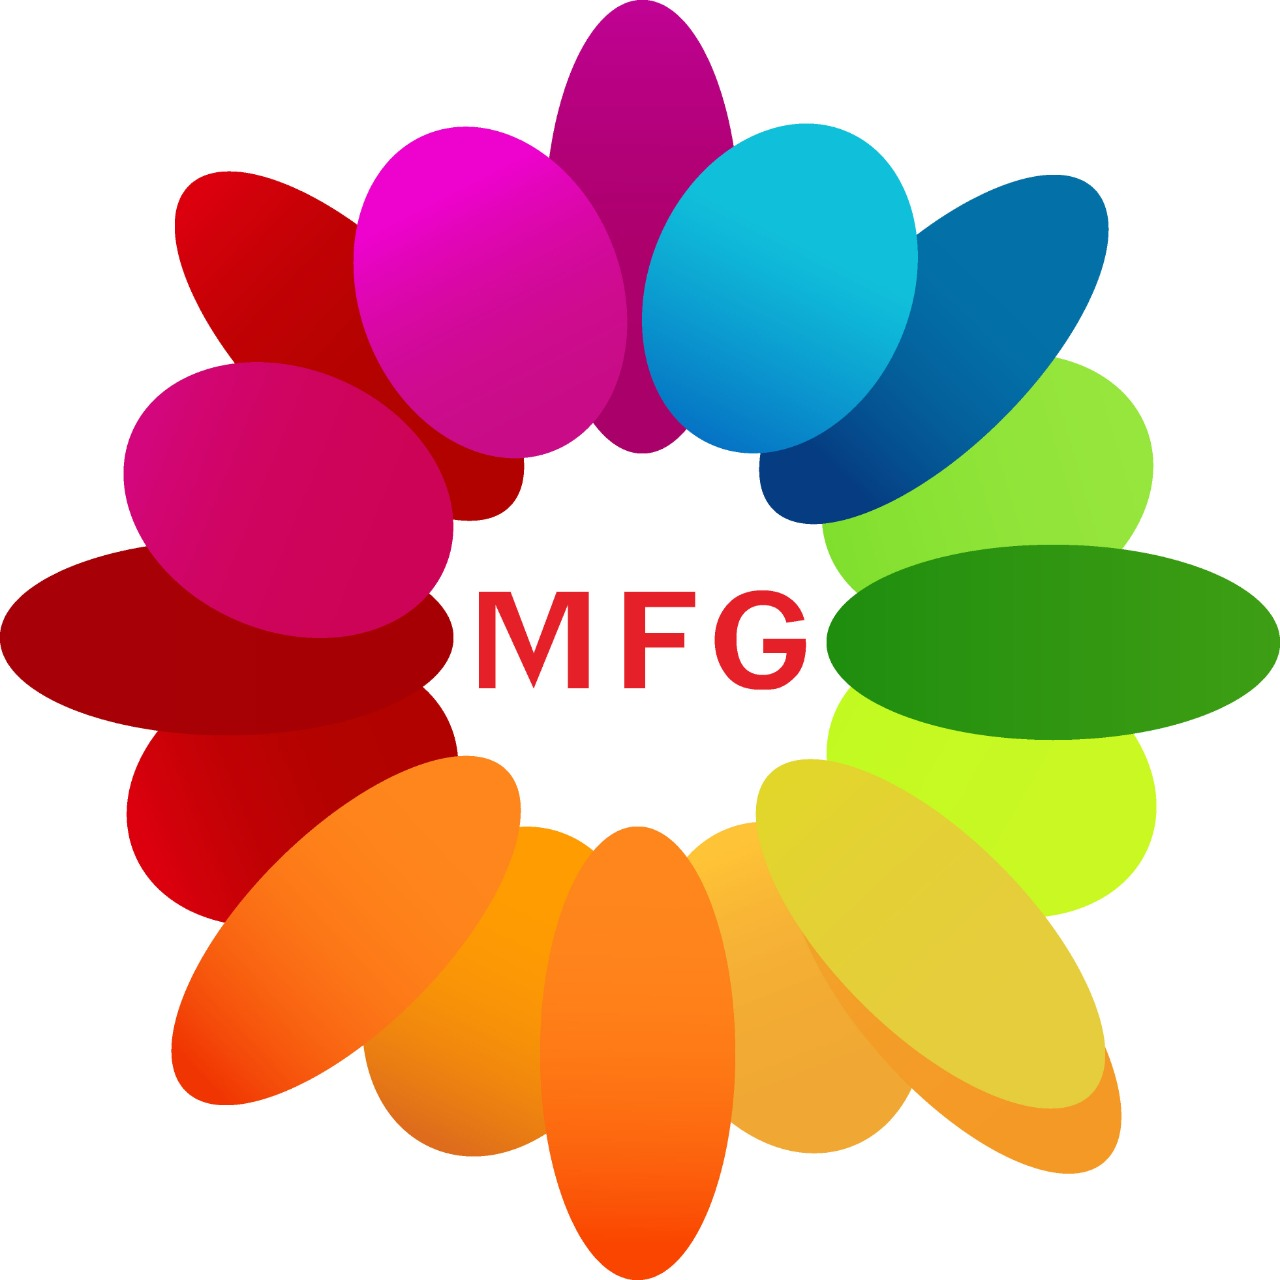 Teddy in Heart shaped rose arranagement